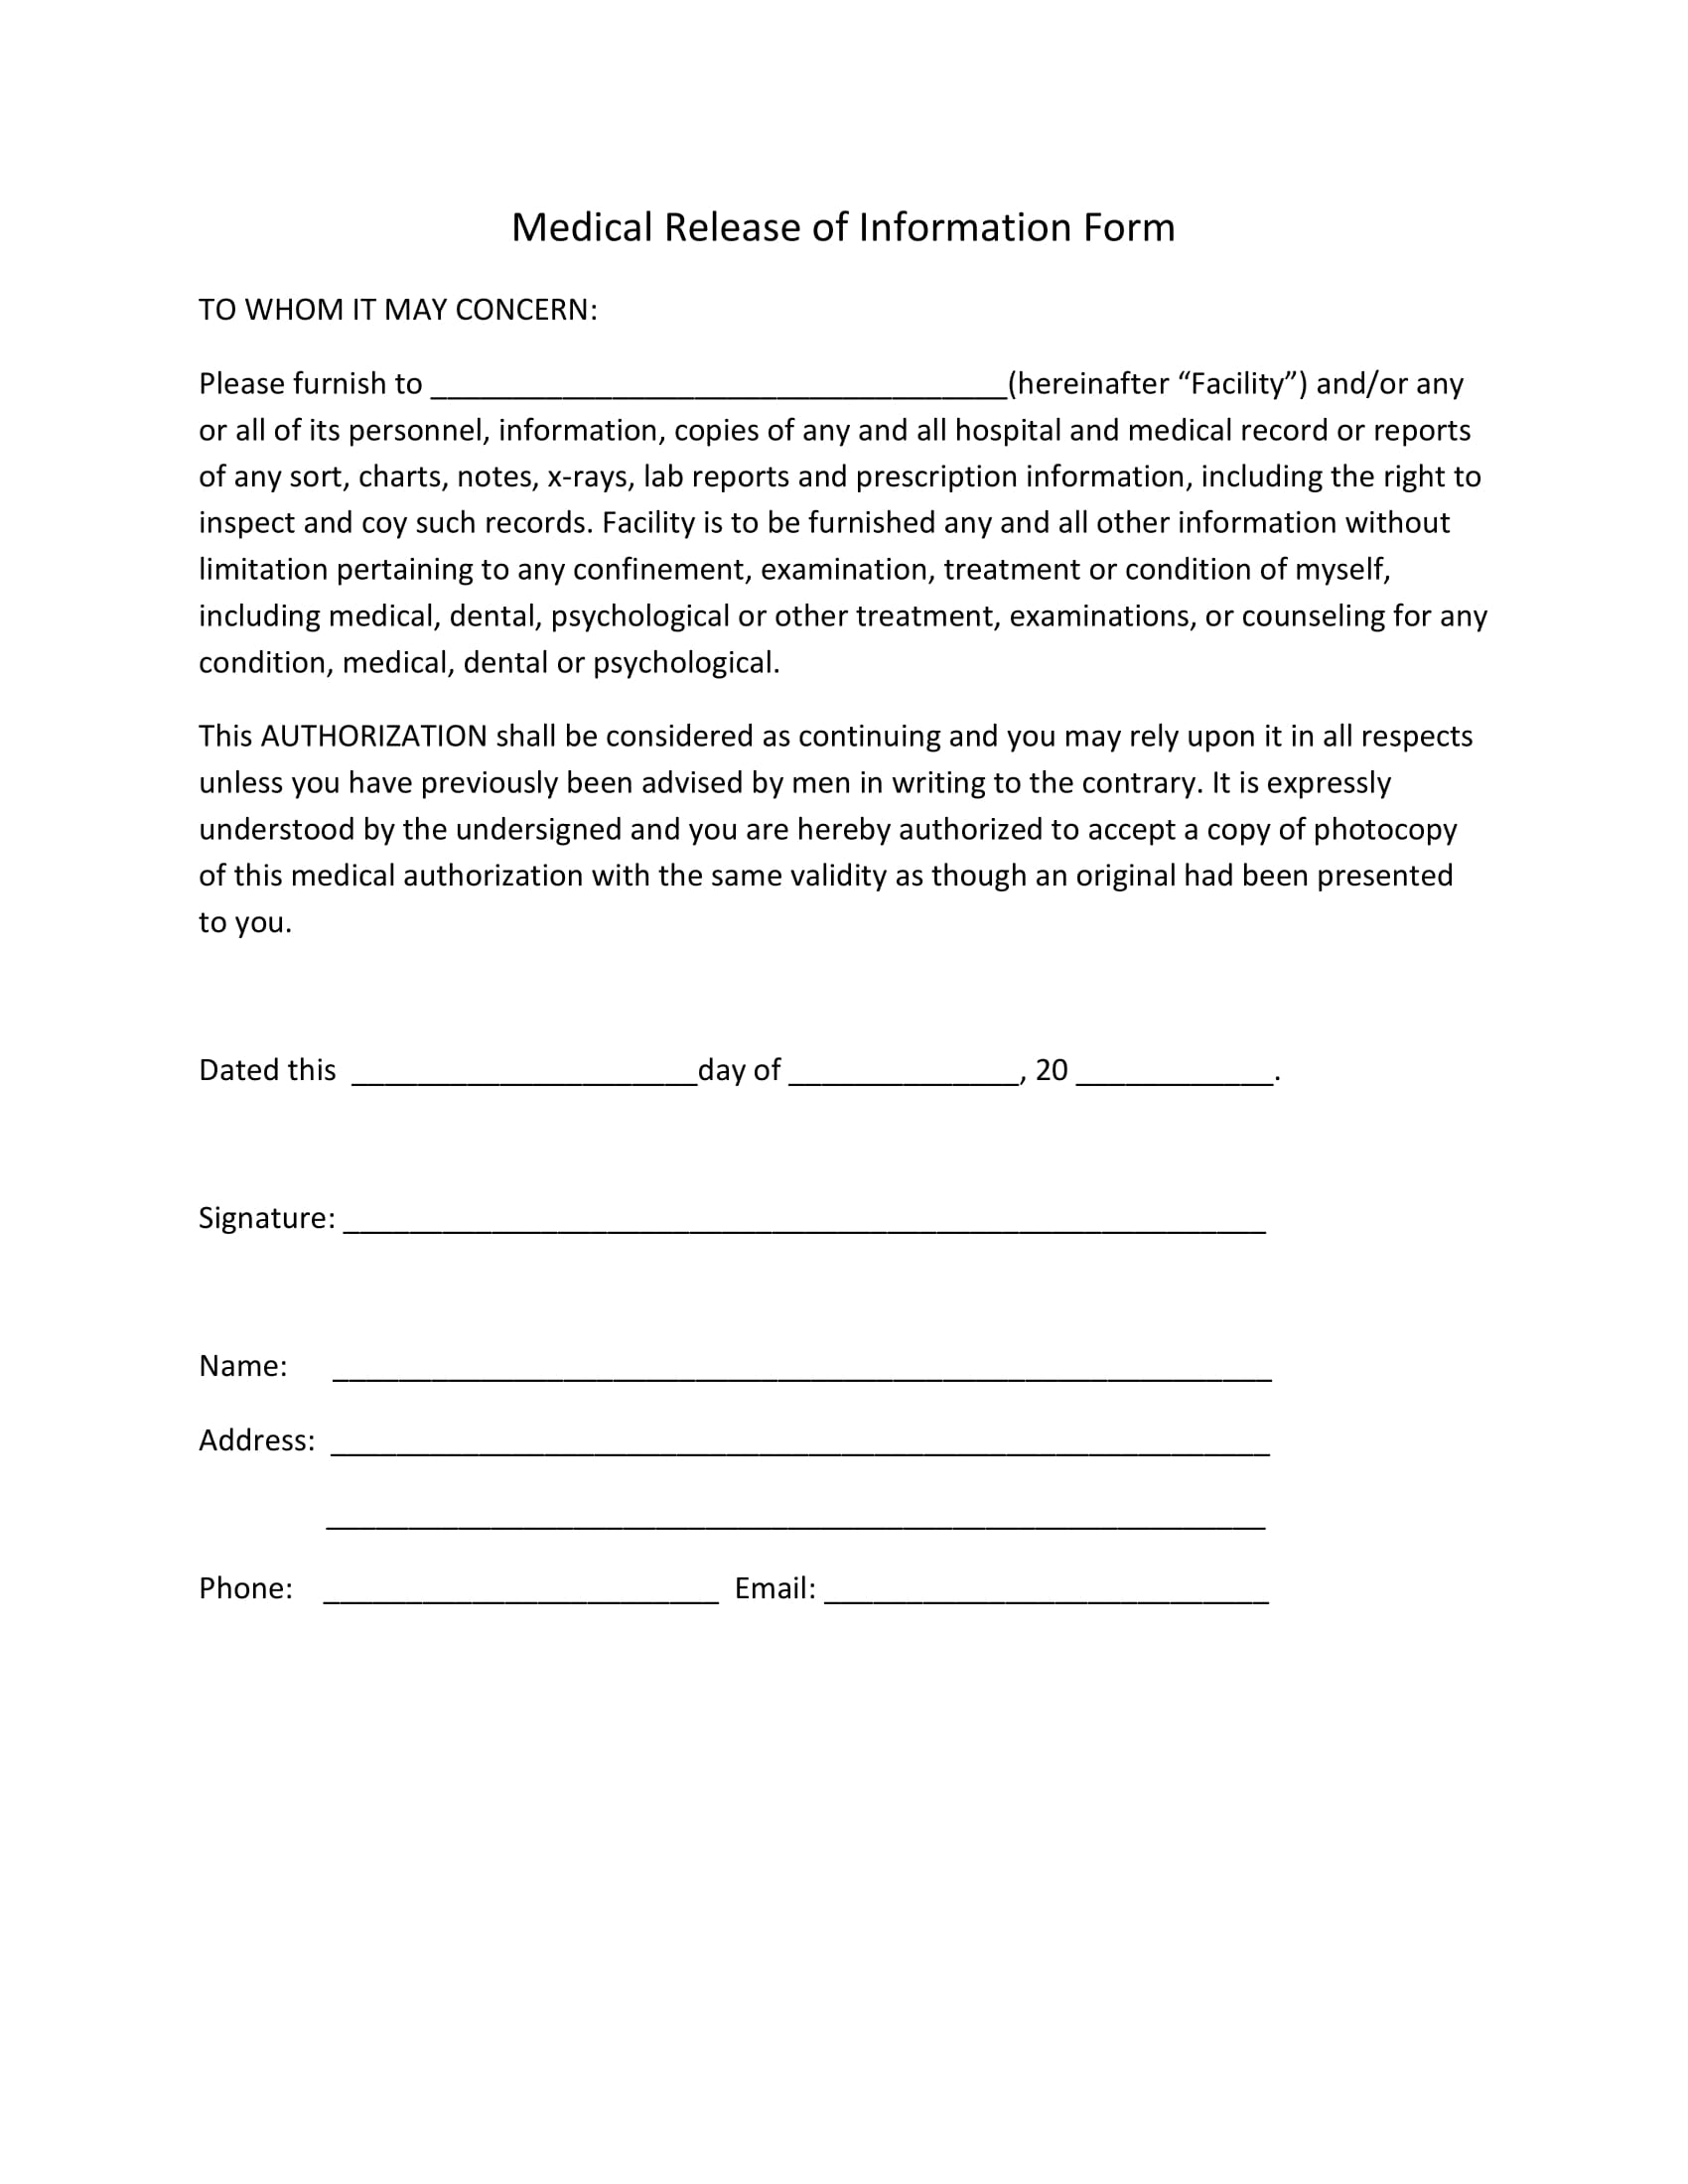 Medical Release of Information Form for Personal Trainer